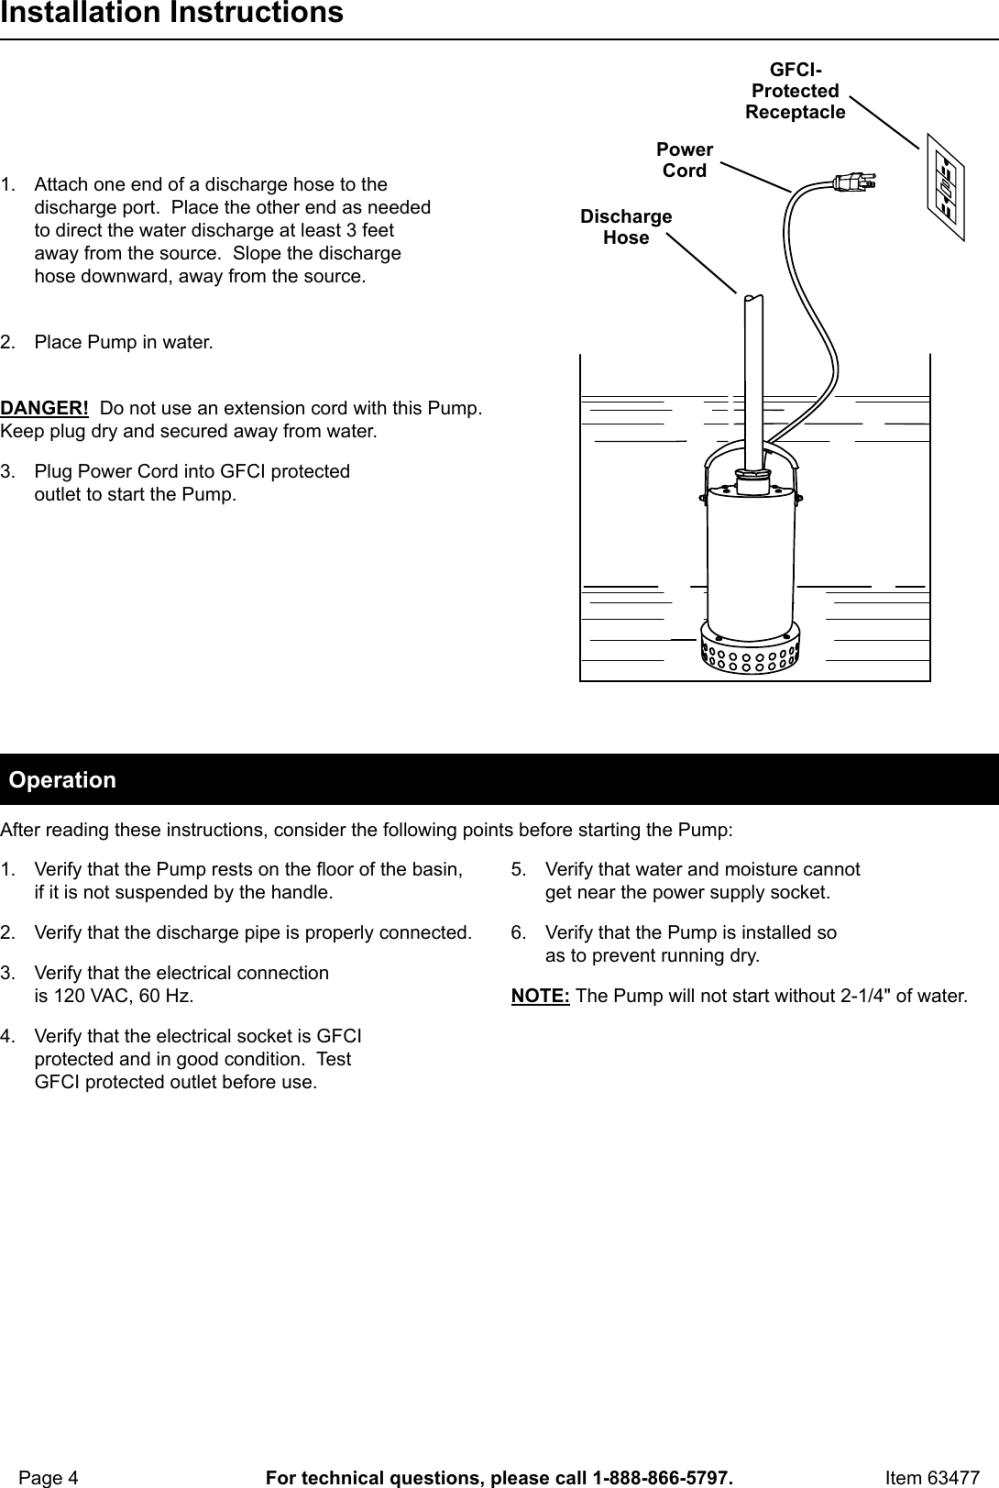 medium resolution of page 4 of 8 manual for the 63477 3 4 hp submersible utility pump